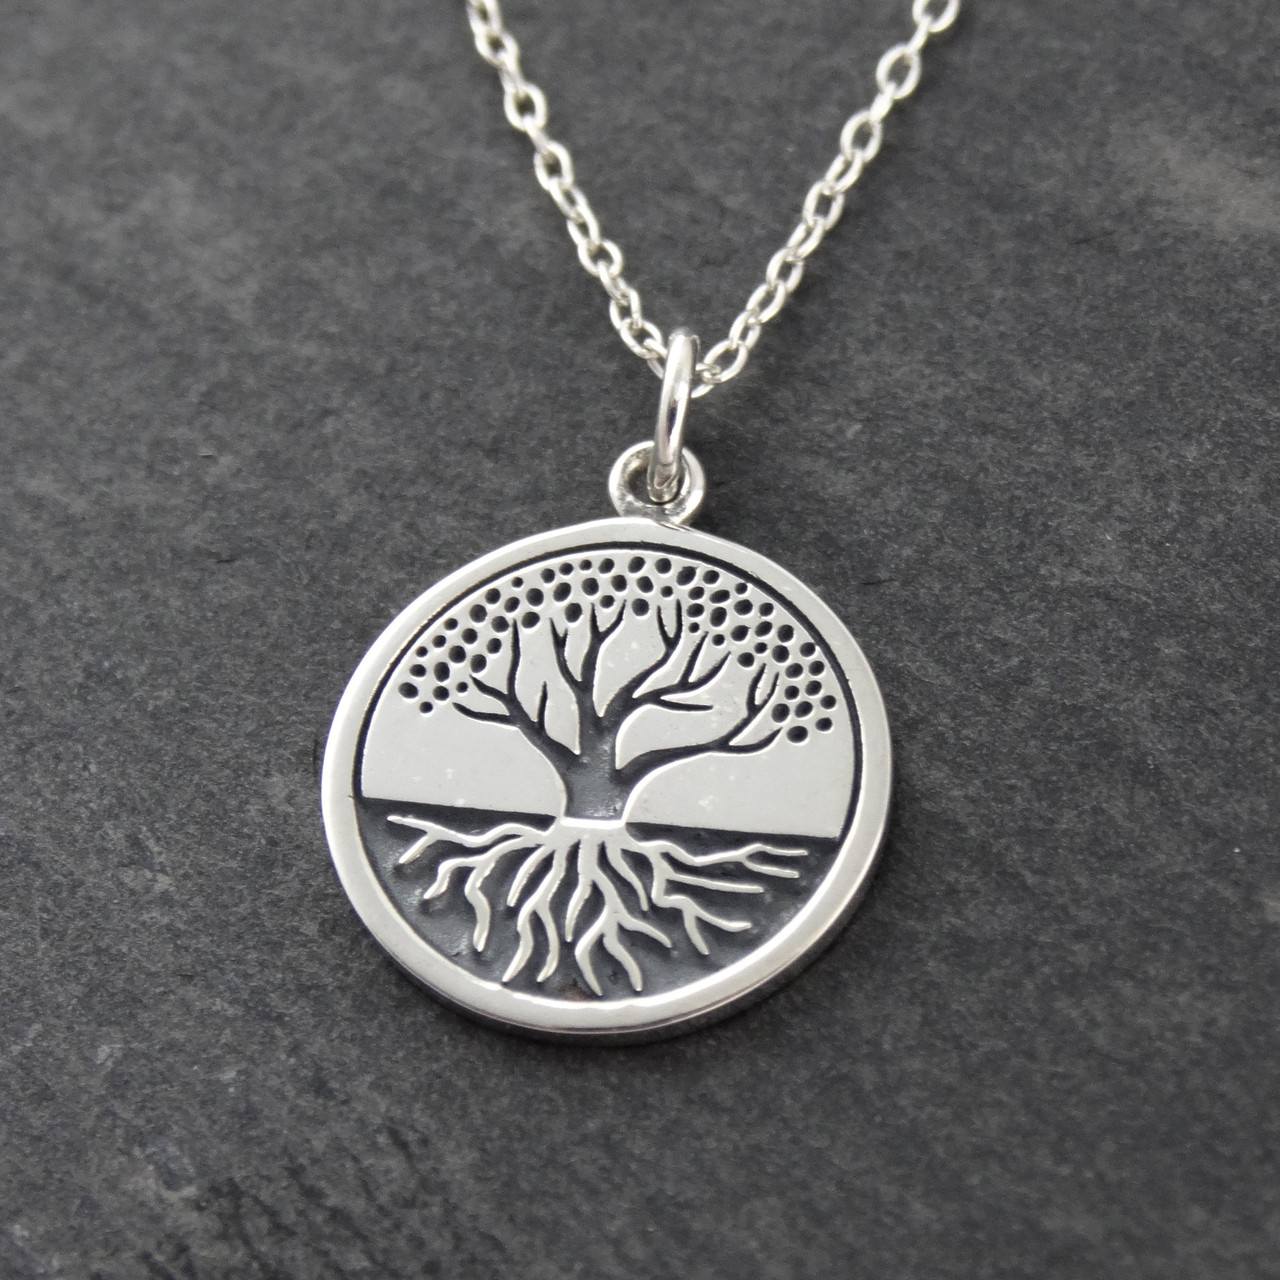 products pine maine pendant wearable tree diffuser lockets wellness side view anjaca